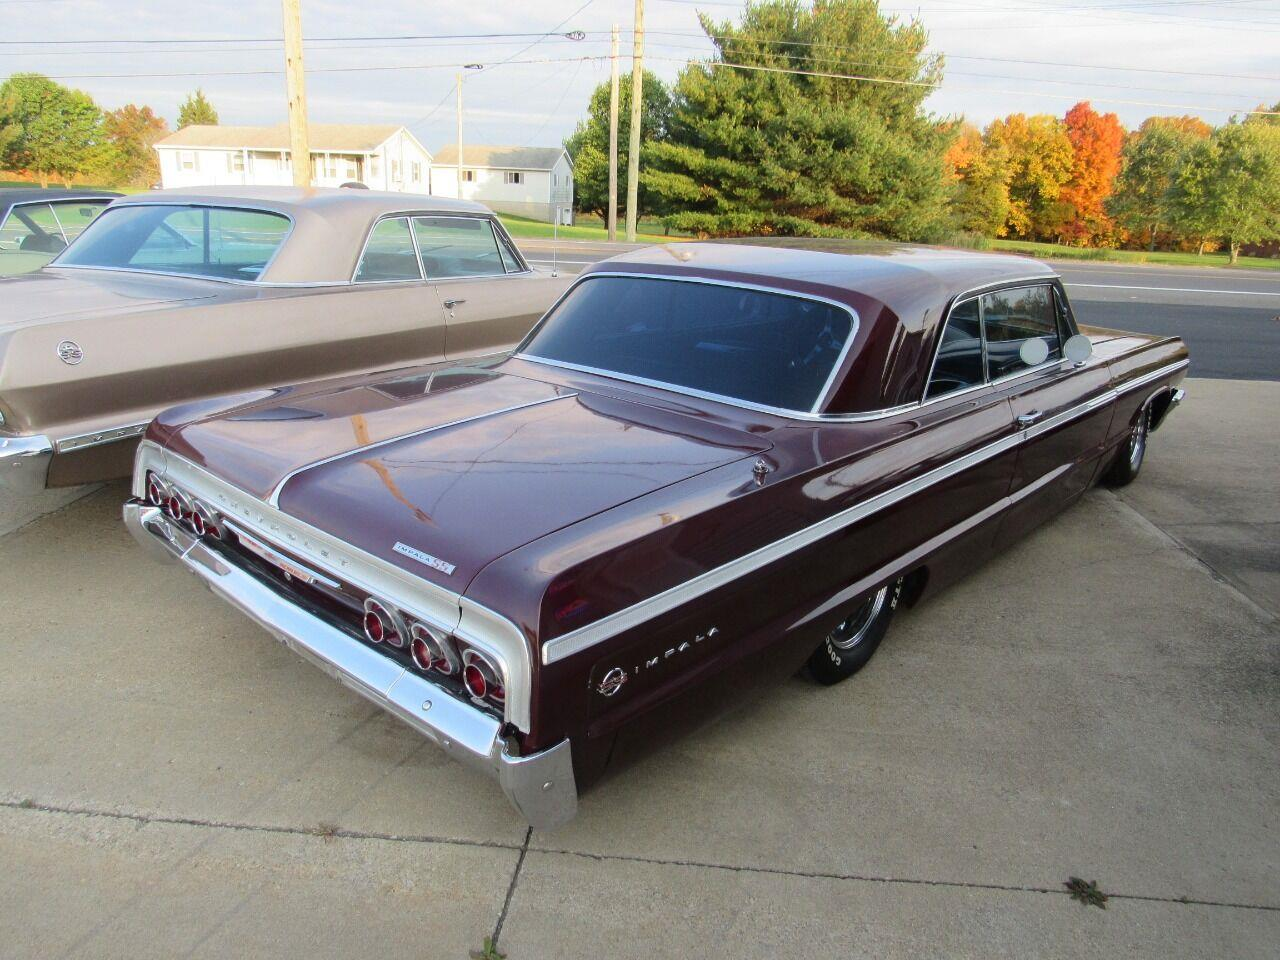 1964 Chevrolet Impala (CC-1418645) for sale in Ashland, Ohio